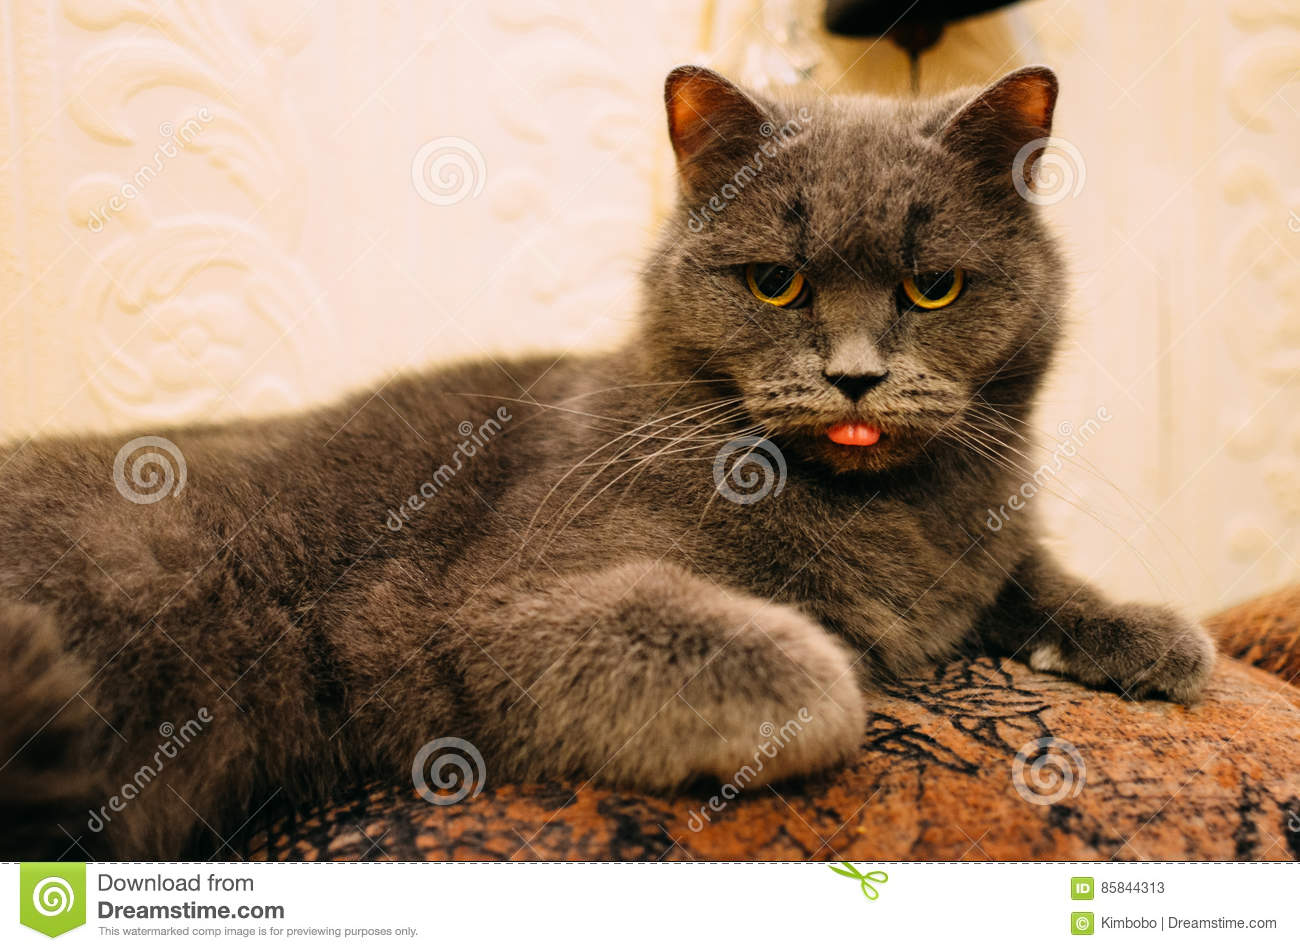 A fussy cat is hungry : It is looking and showing its tongue